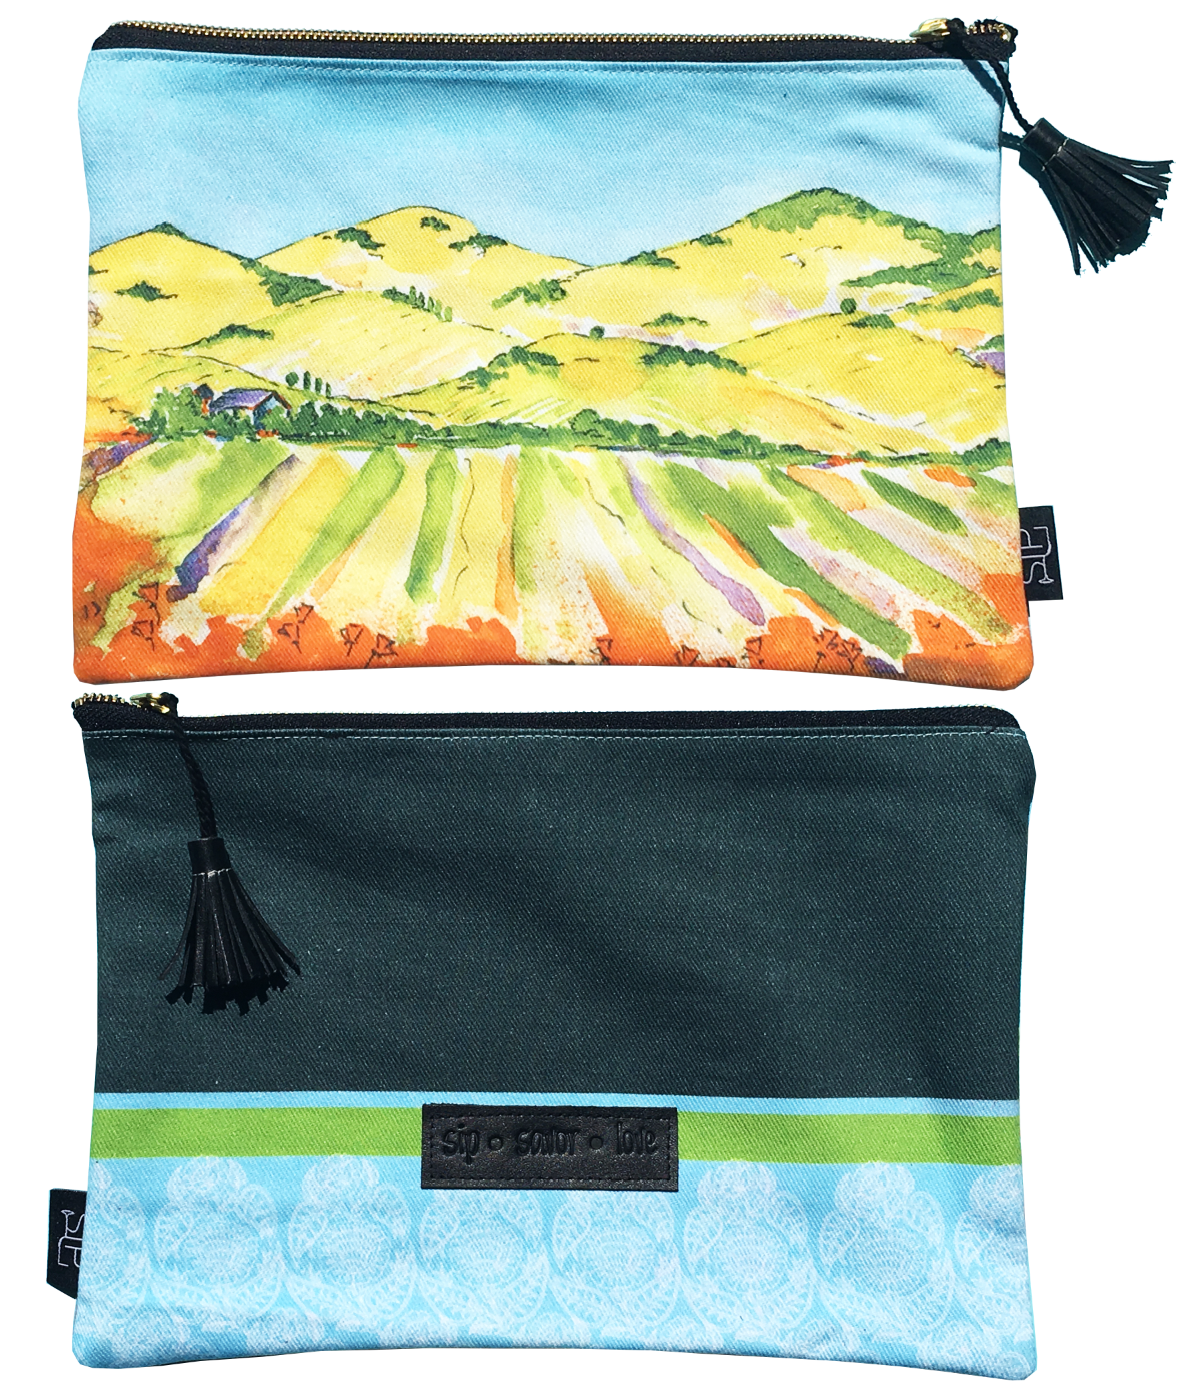 28b The Hills Are Alive - Clutch Bag